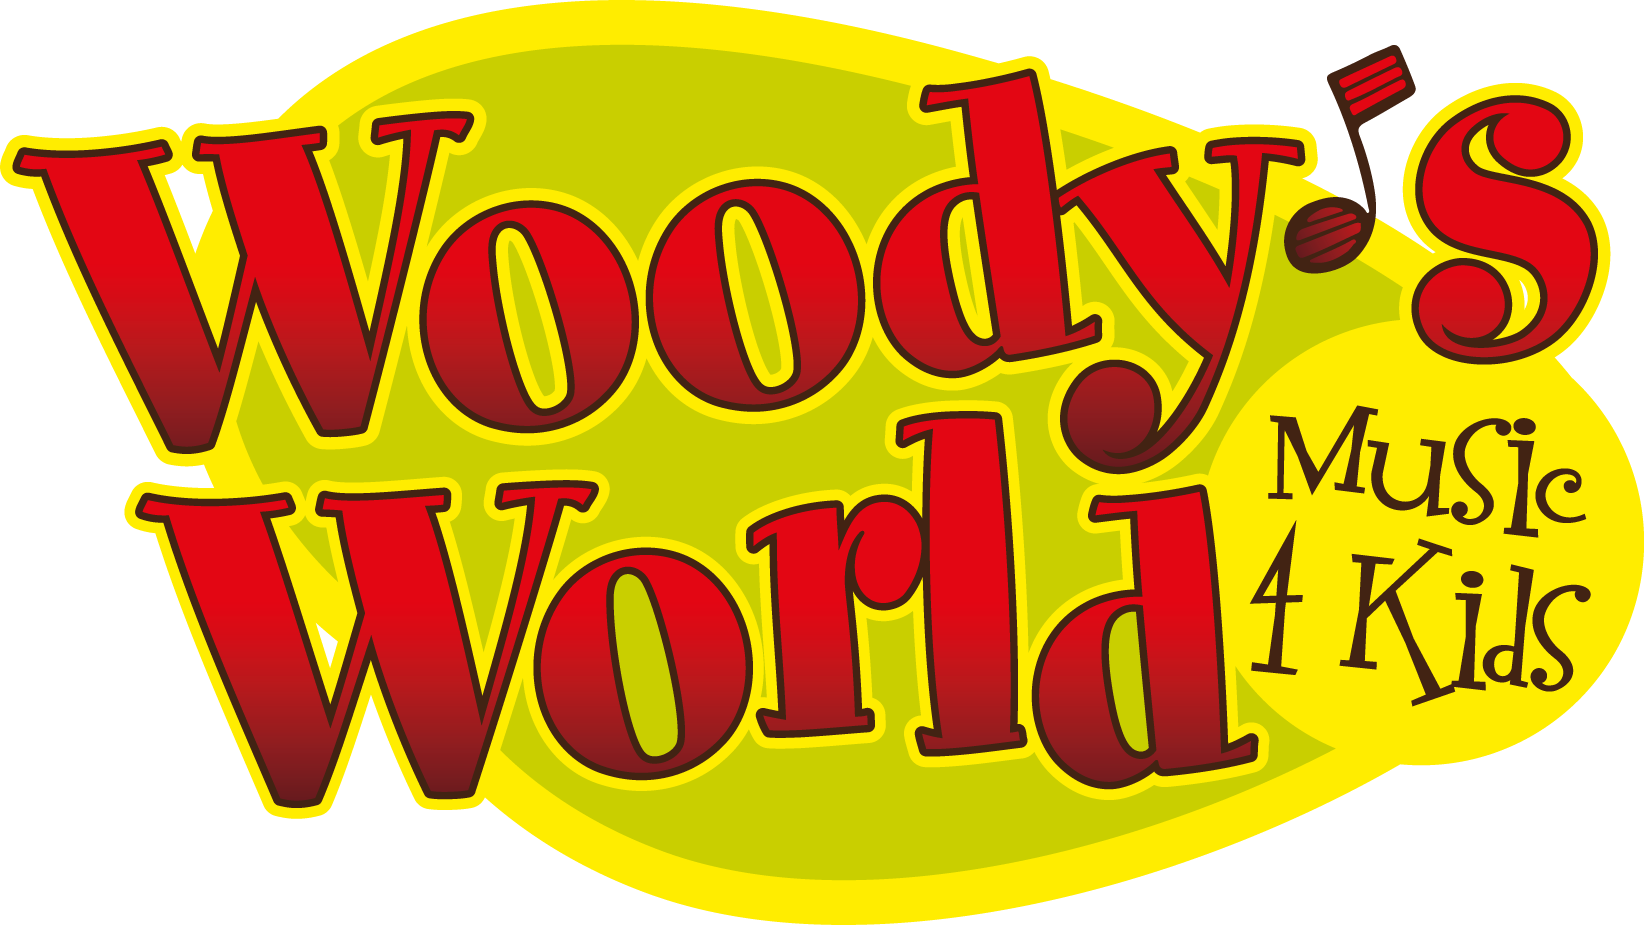 Woody's World Logo 2019